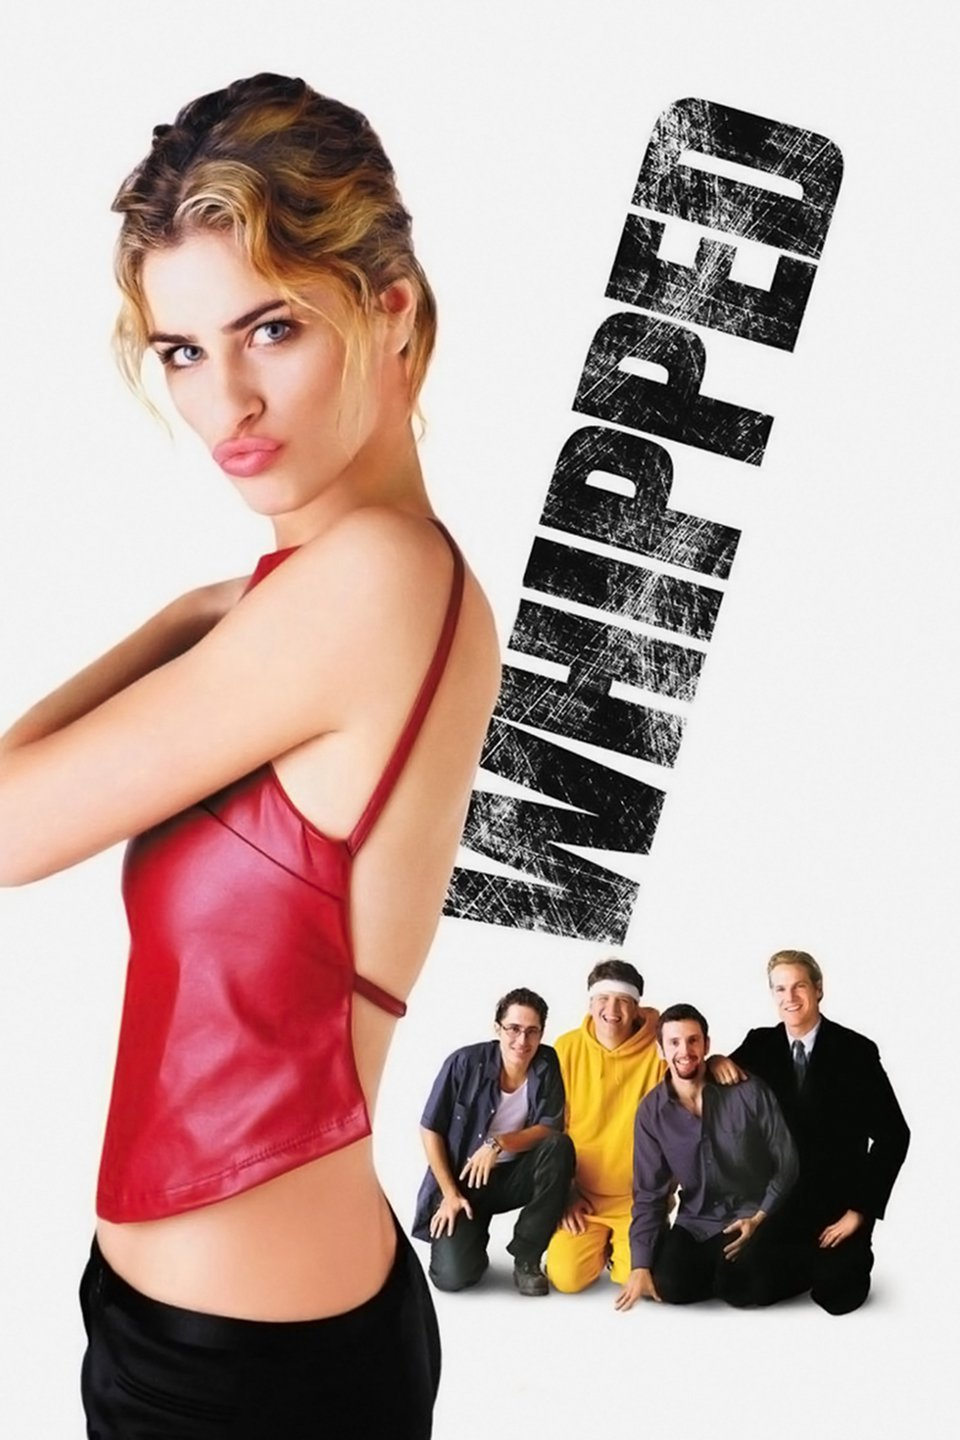 Whipped (2000)